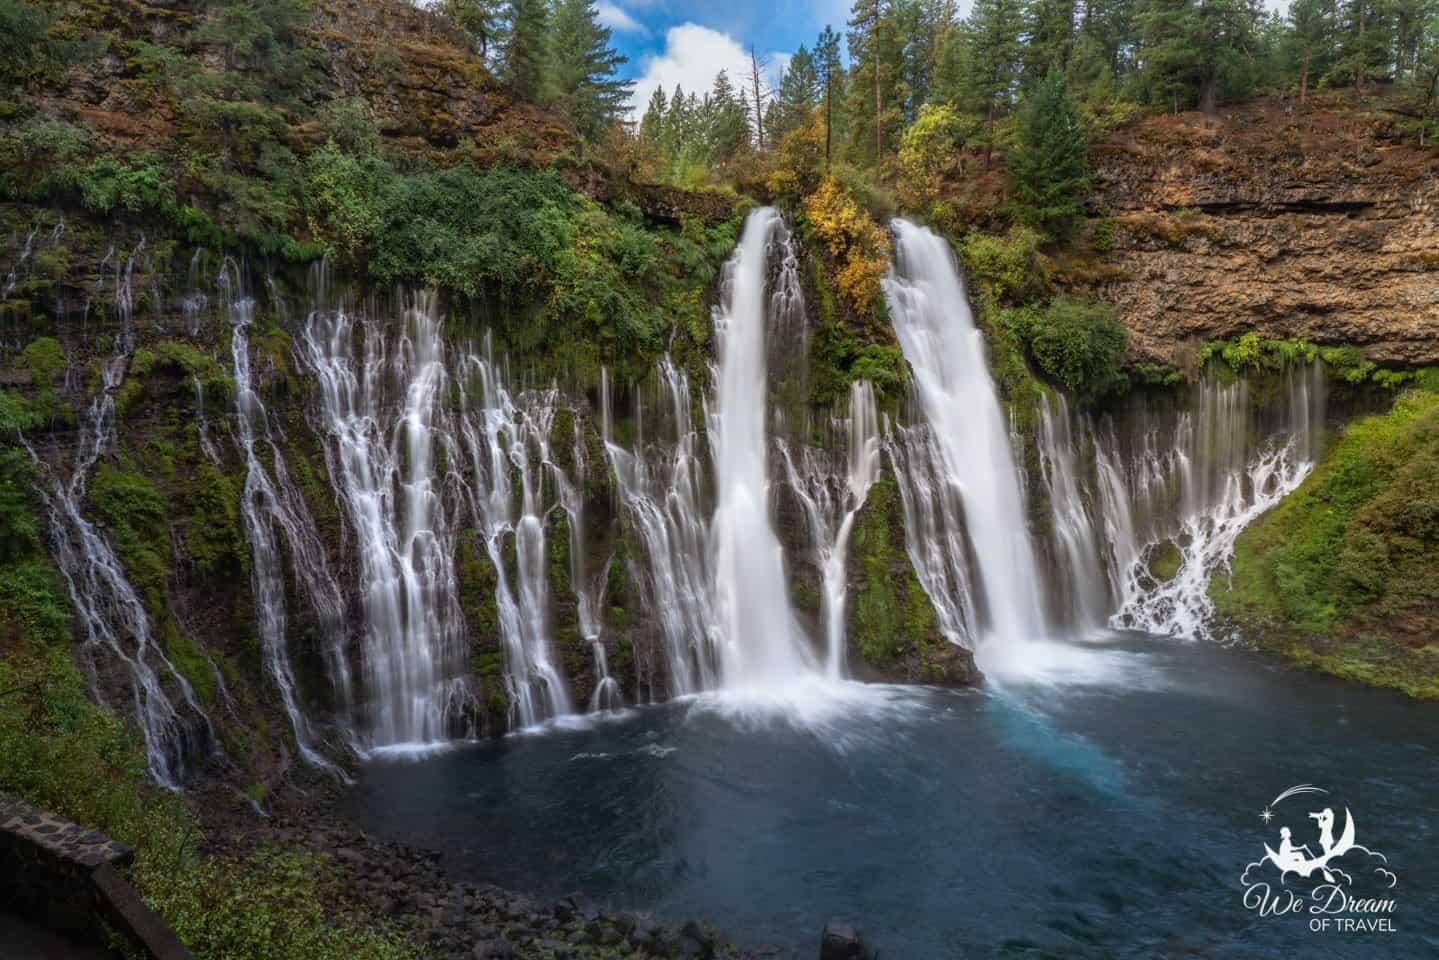 Final thoughts on Burney Falls camping, hiking, and photography guide.